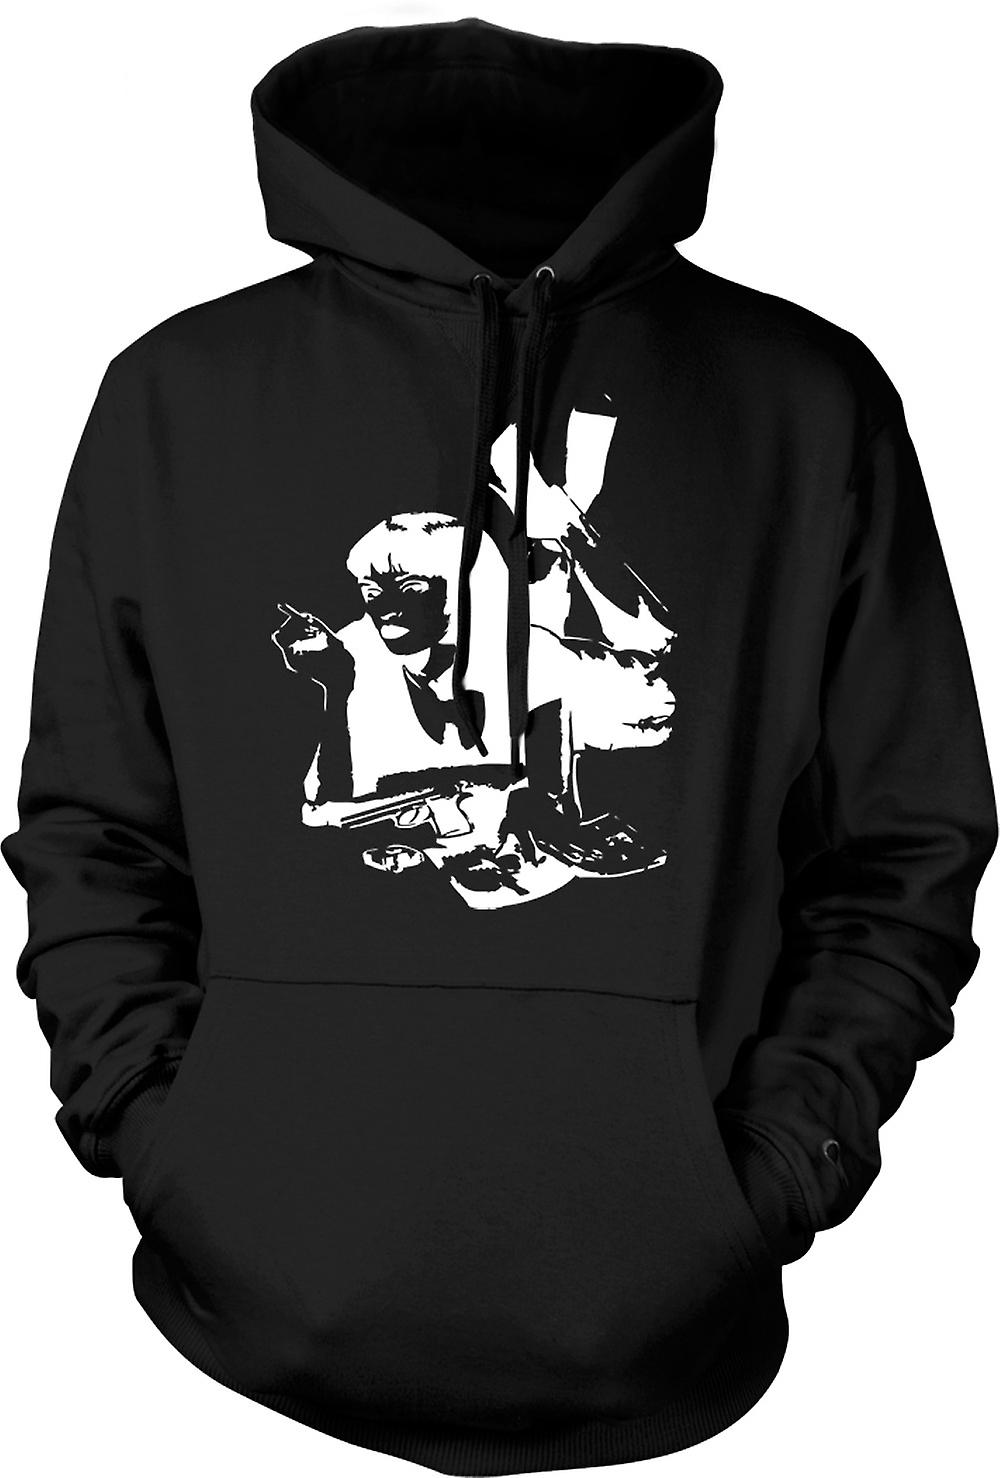 Mens Hoodie - Pulp Fiction - Mia Wallace - Stencil